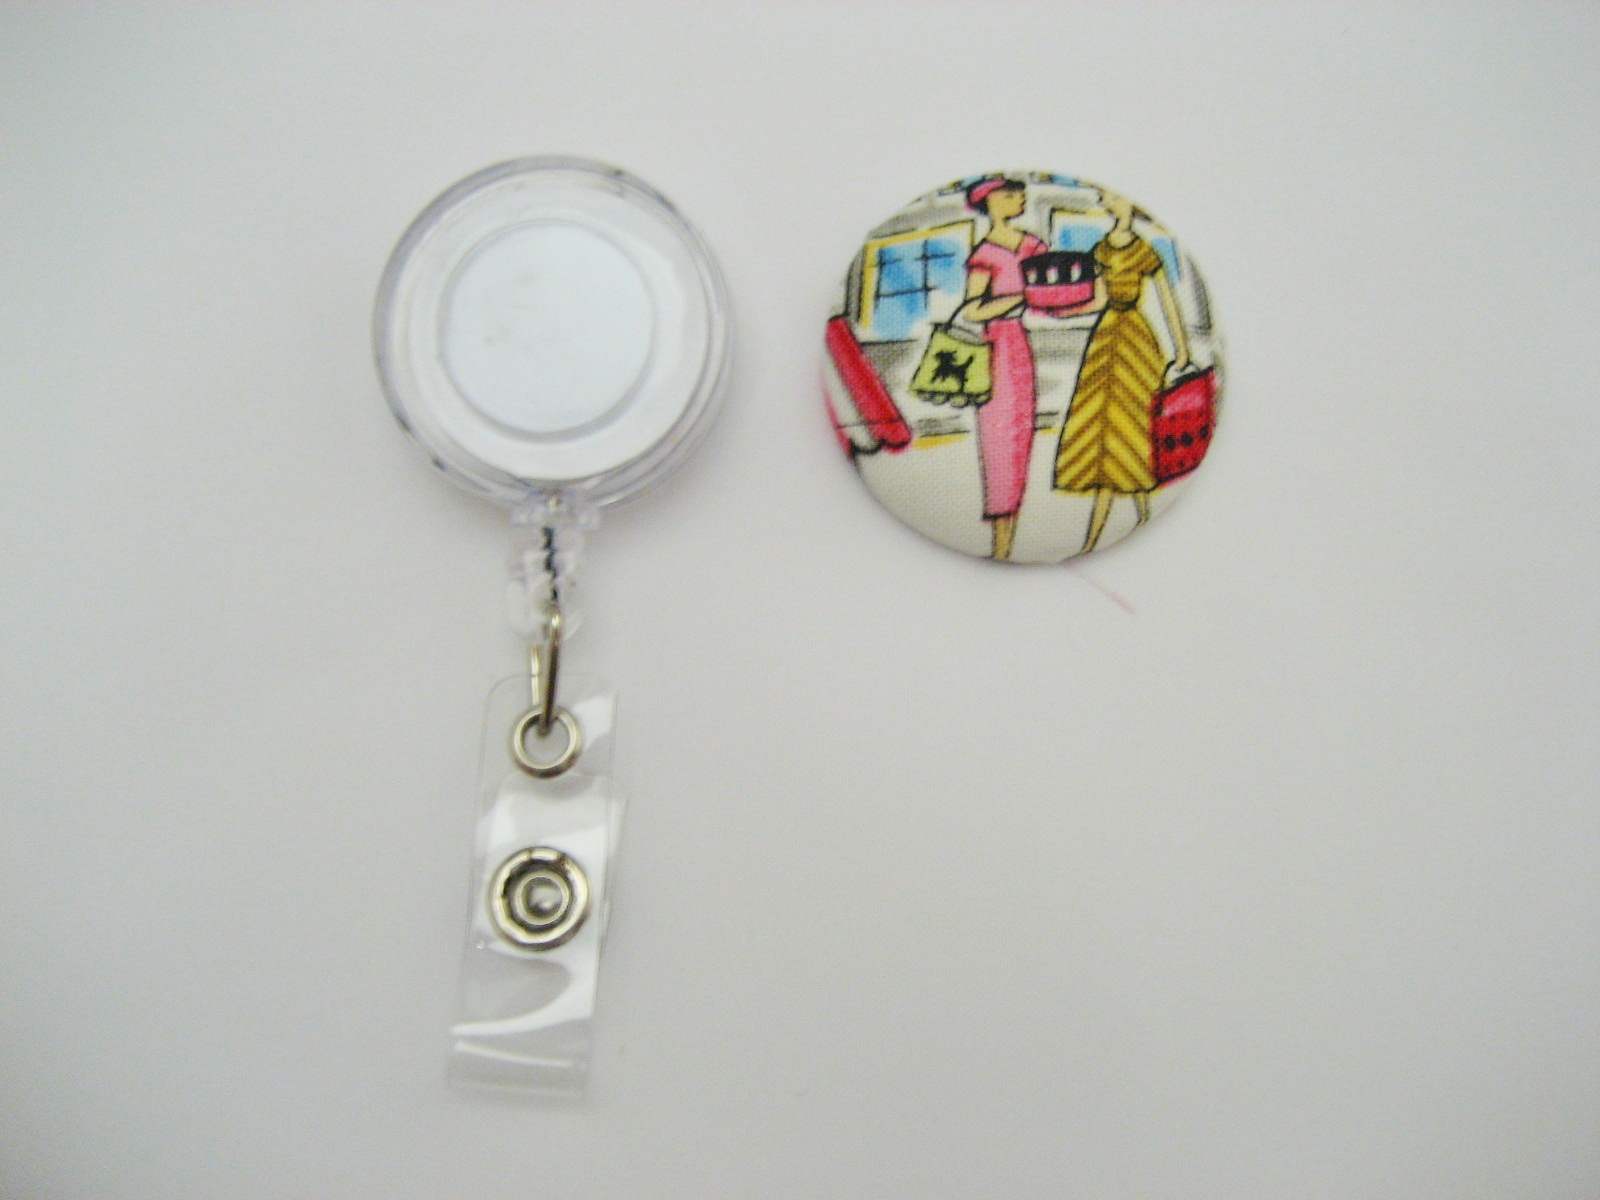 Self Cover Button Badge Reel Tutorial - All Wrapped Up